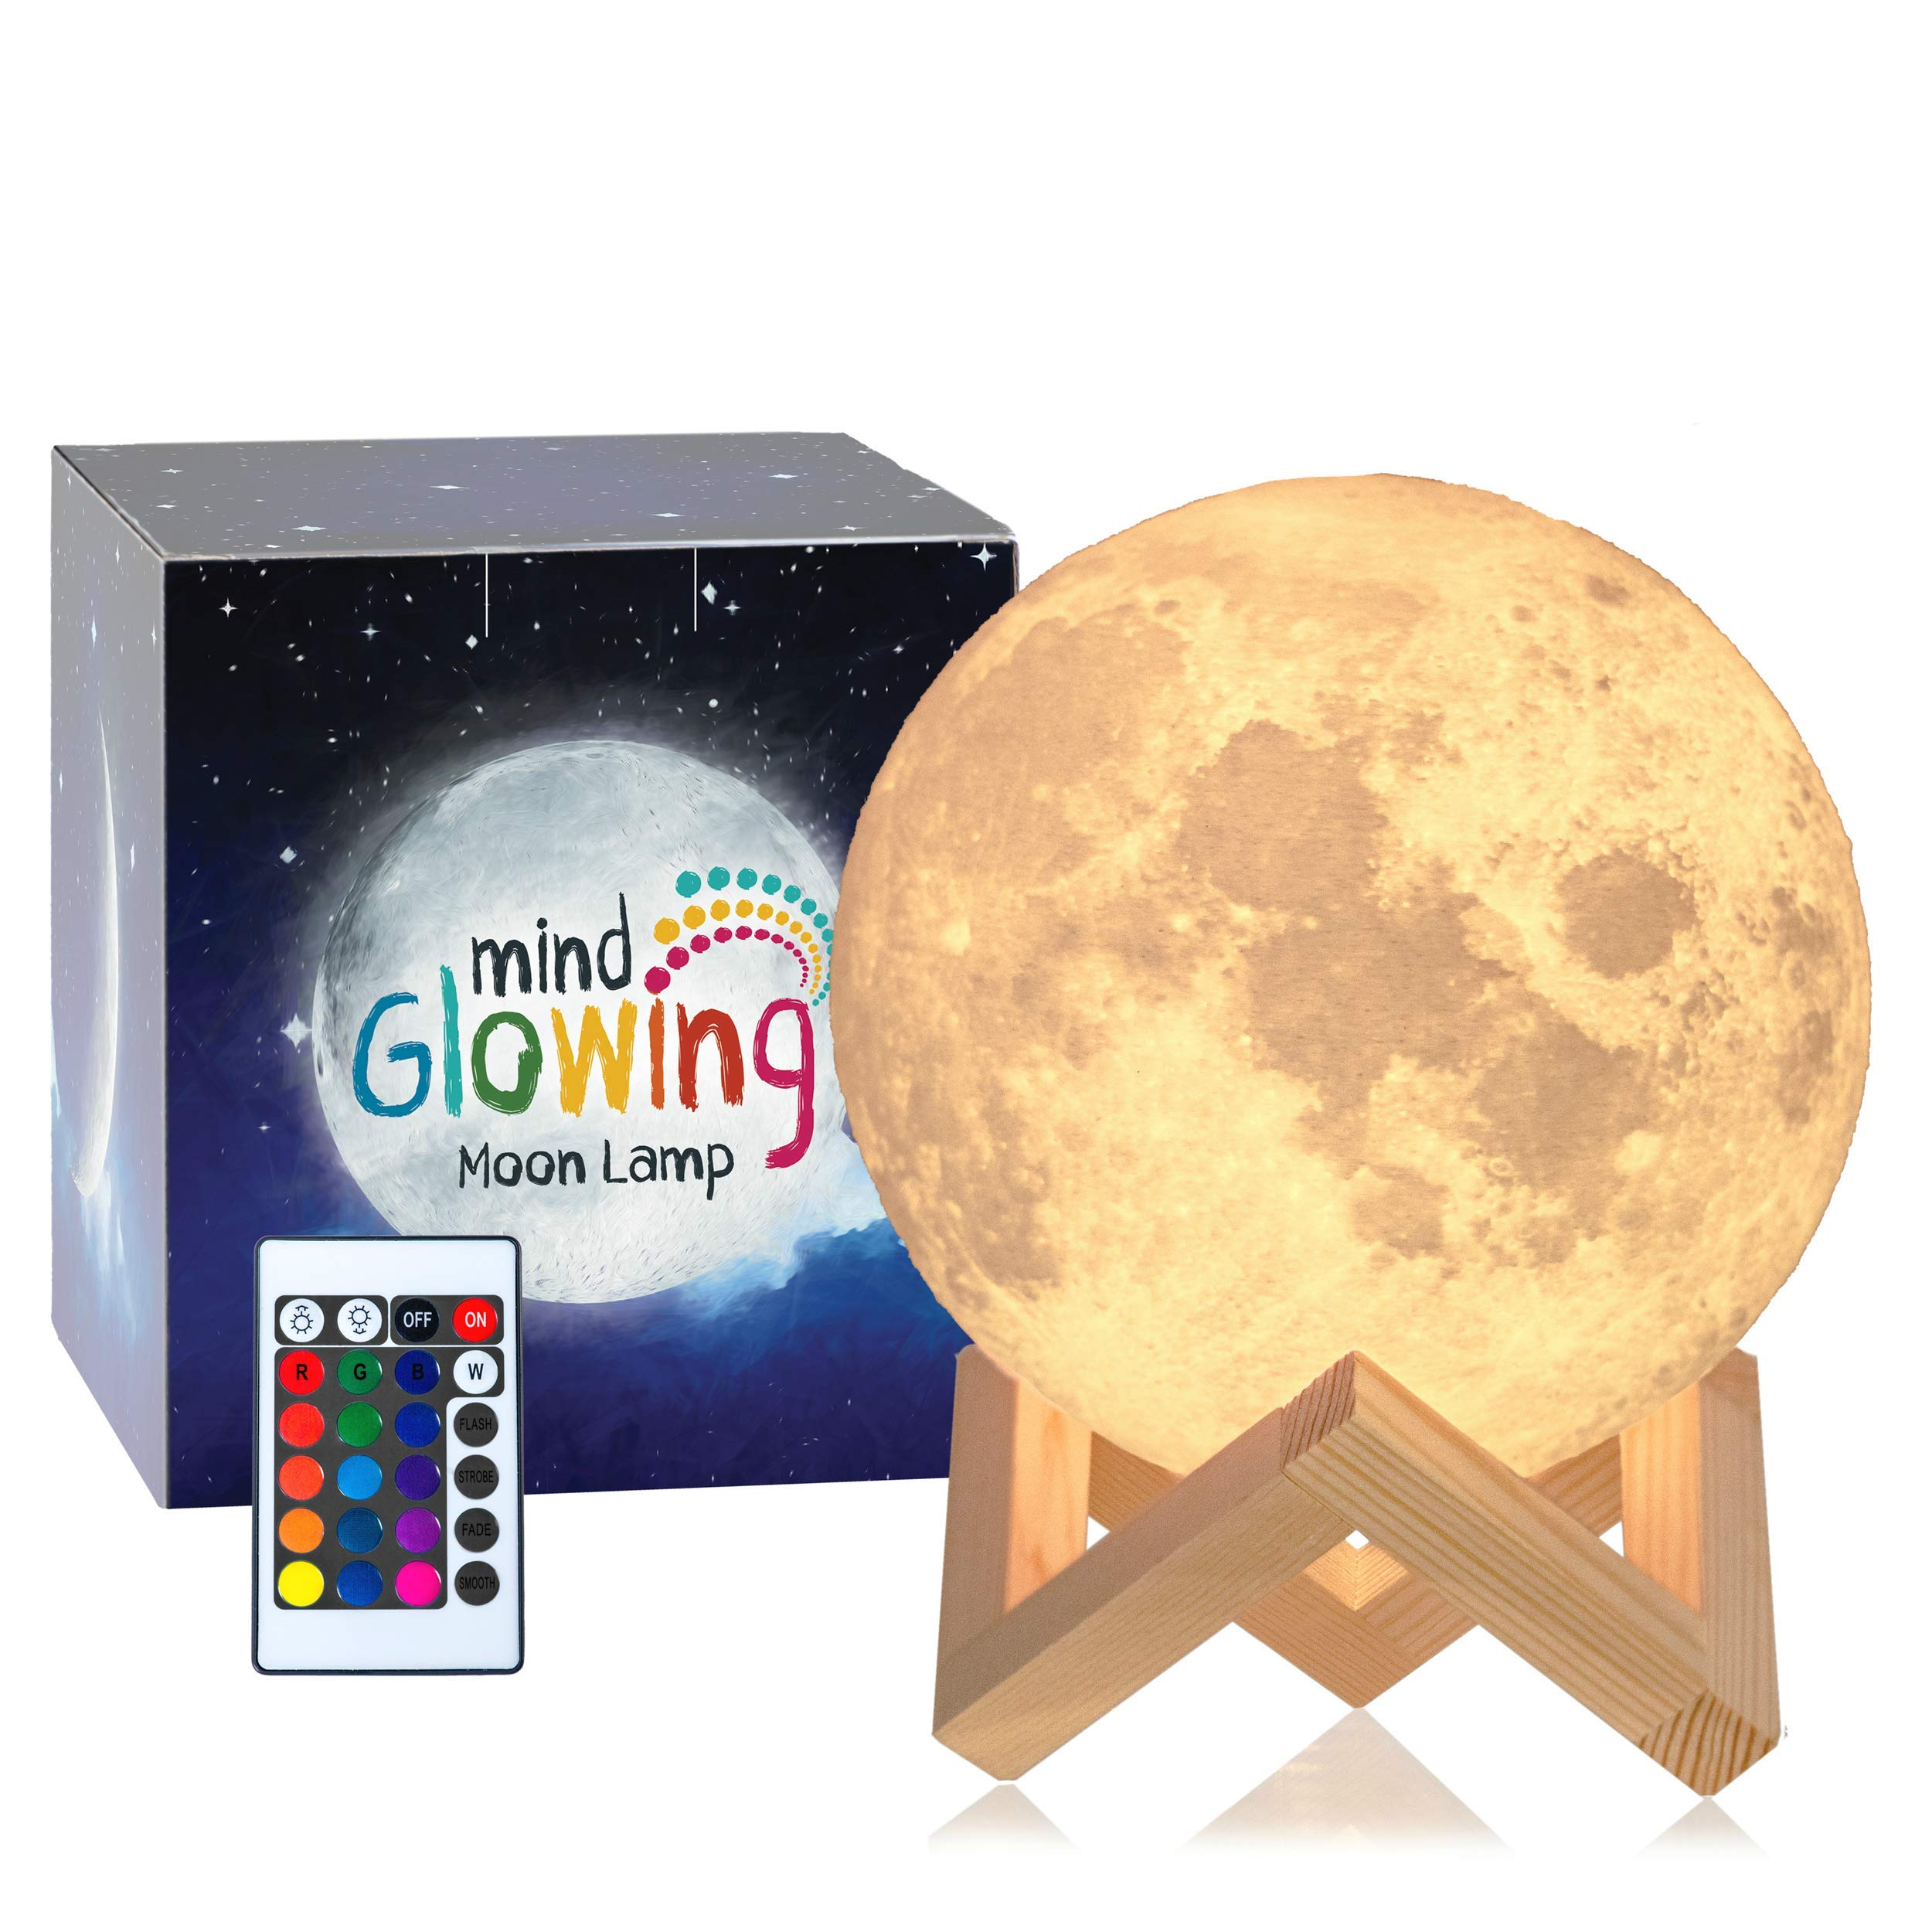 Mind-glowing 3D Moon Lamp - 16 LED Colors, Dimmable, Rechargeable Lunar Night Light (Large, 5.9in) Full Set with Wooden Stand, Remote & Touch Control - Cool Nursery Decor for your Baby, Top Gift Idea